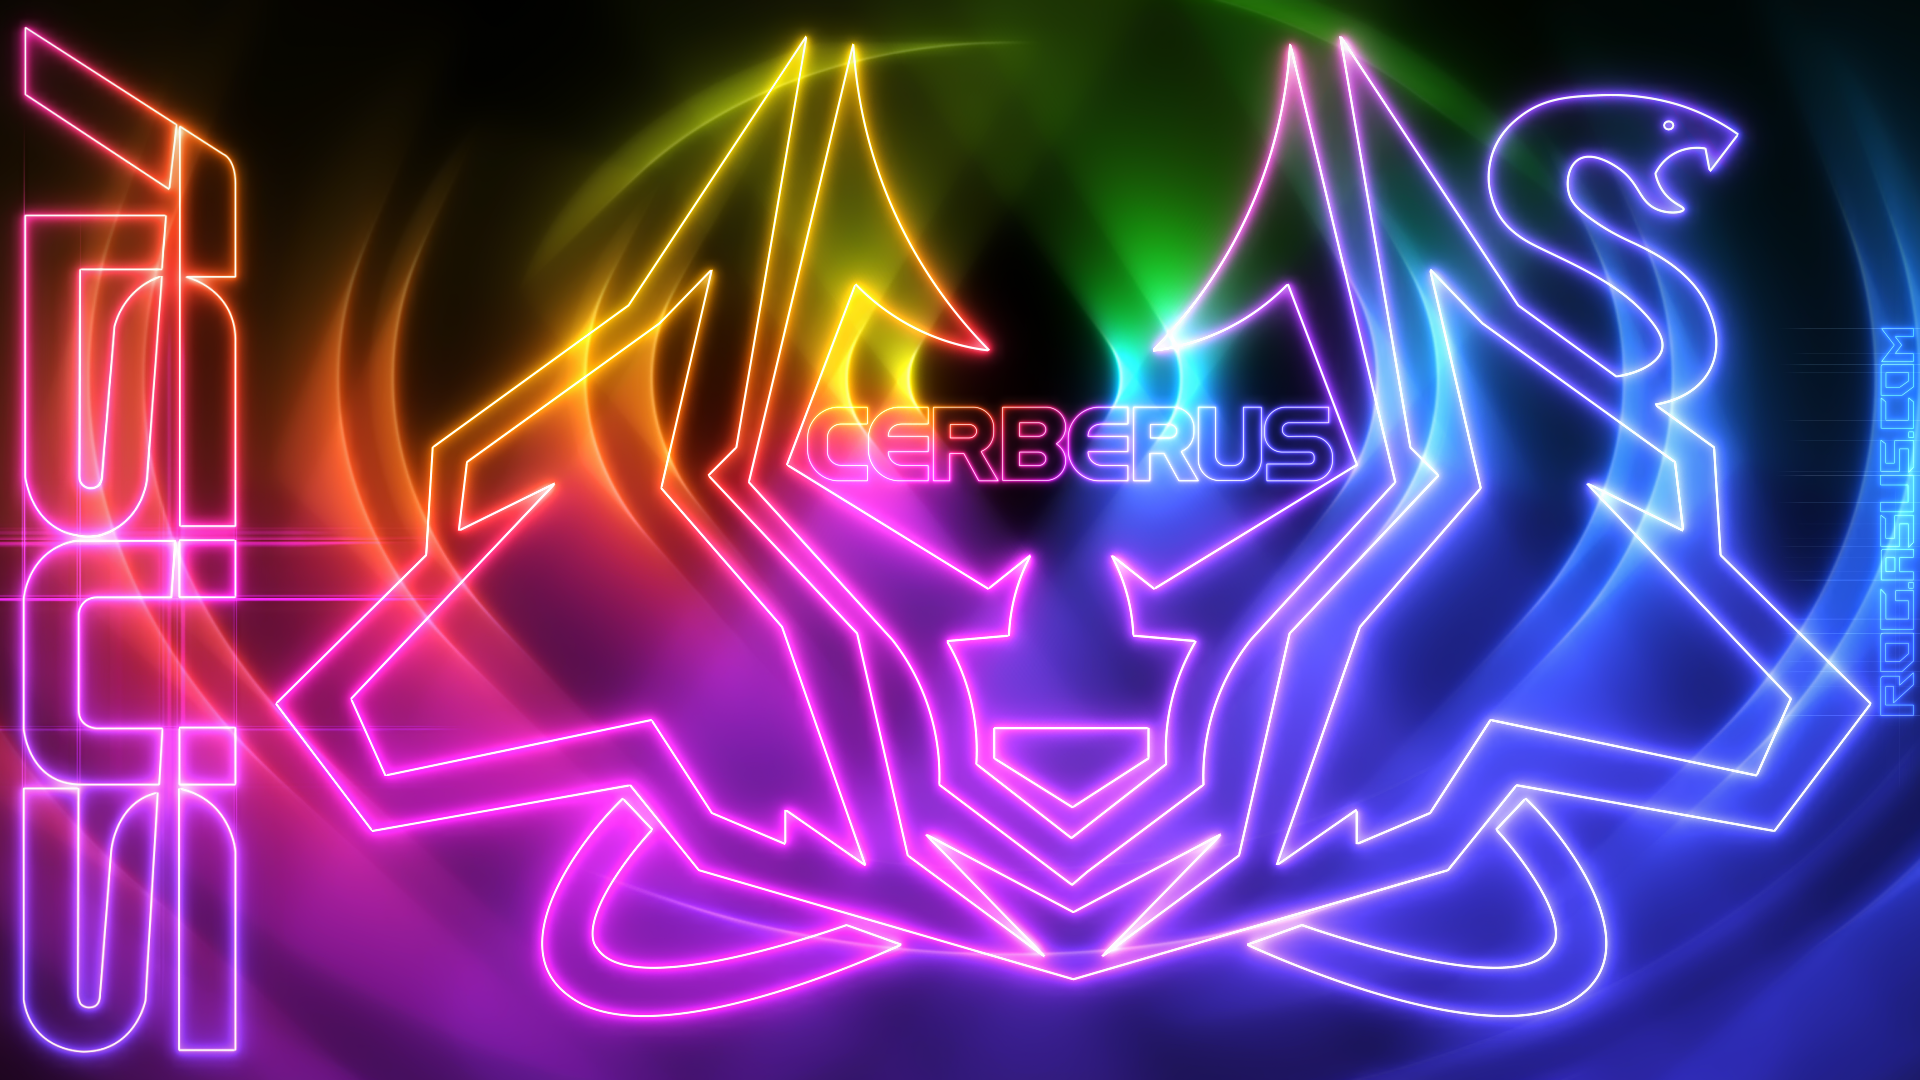 Download - Asus Cerberus Wallpapers Hd , HD Wallpaper & Backgrounds